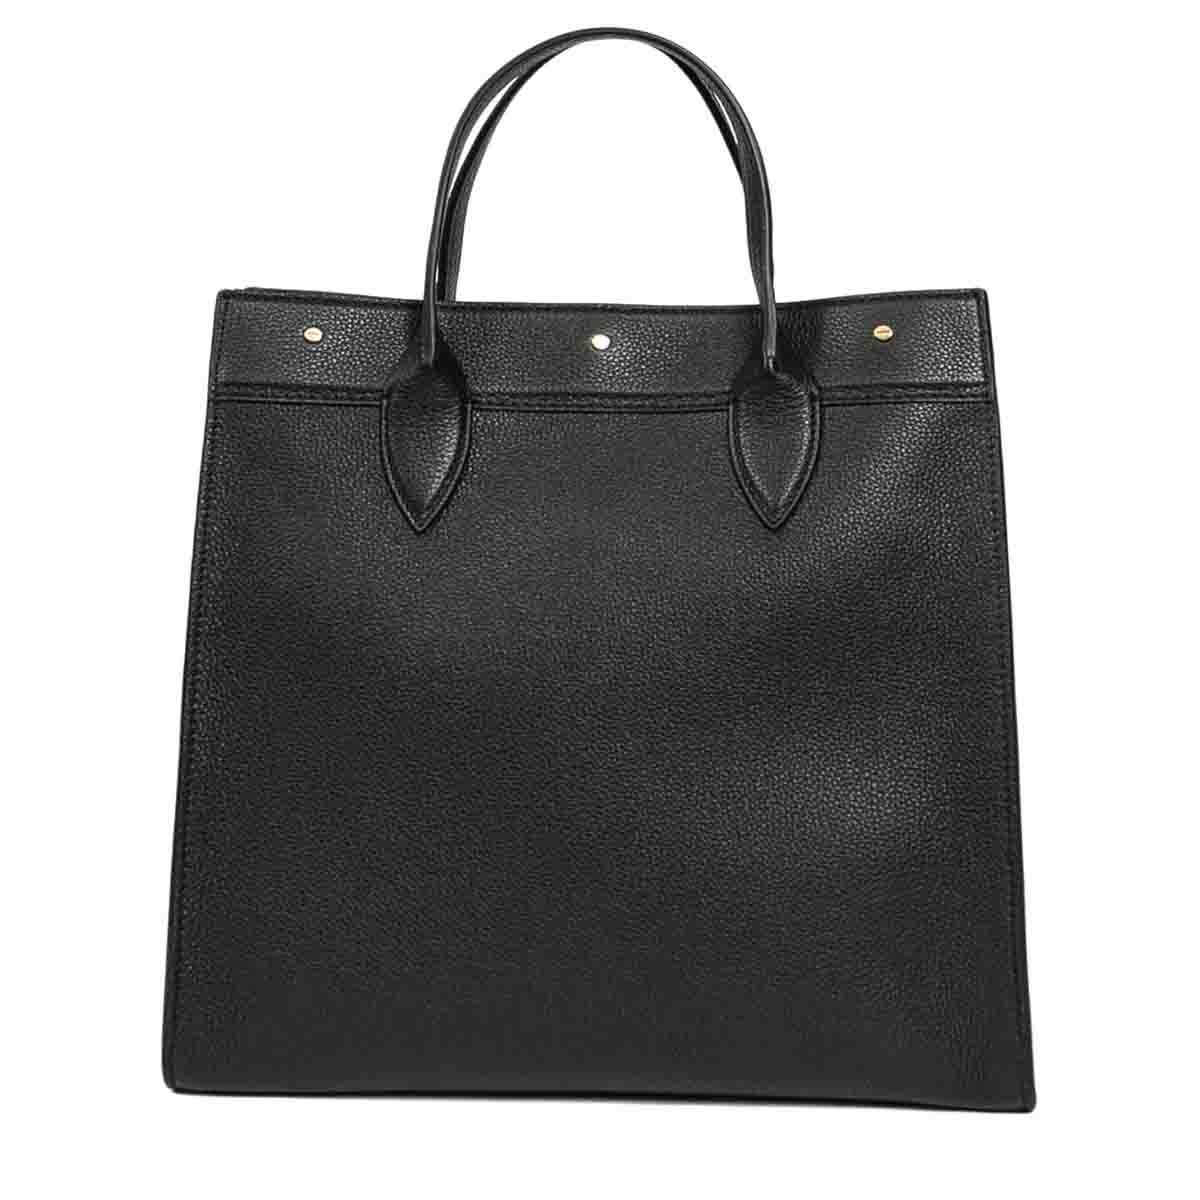 Borbonese BORBONESE WOMEN'S BLACK LEATHER HANDBAG